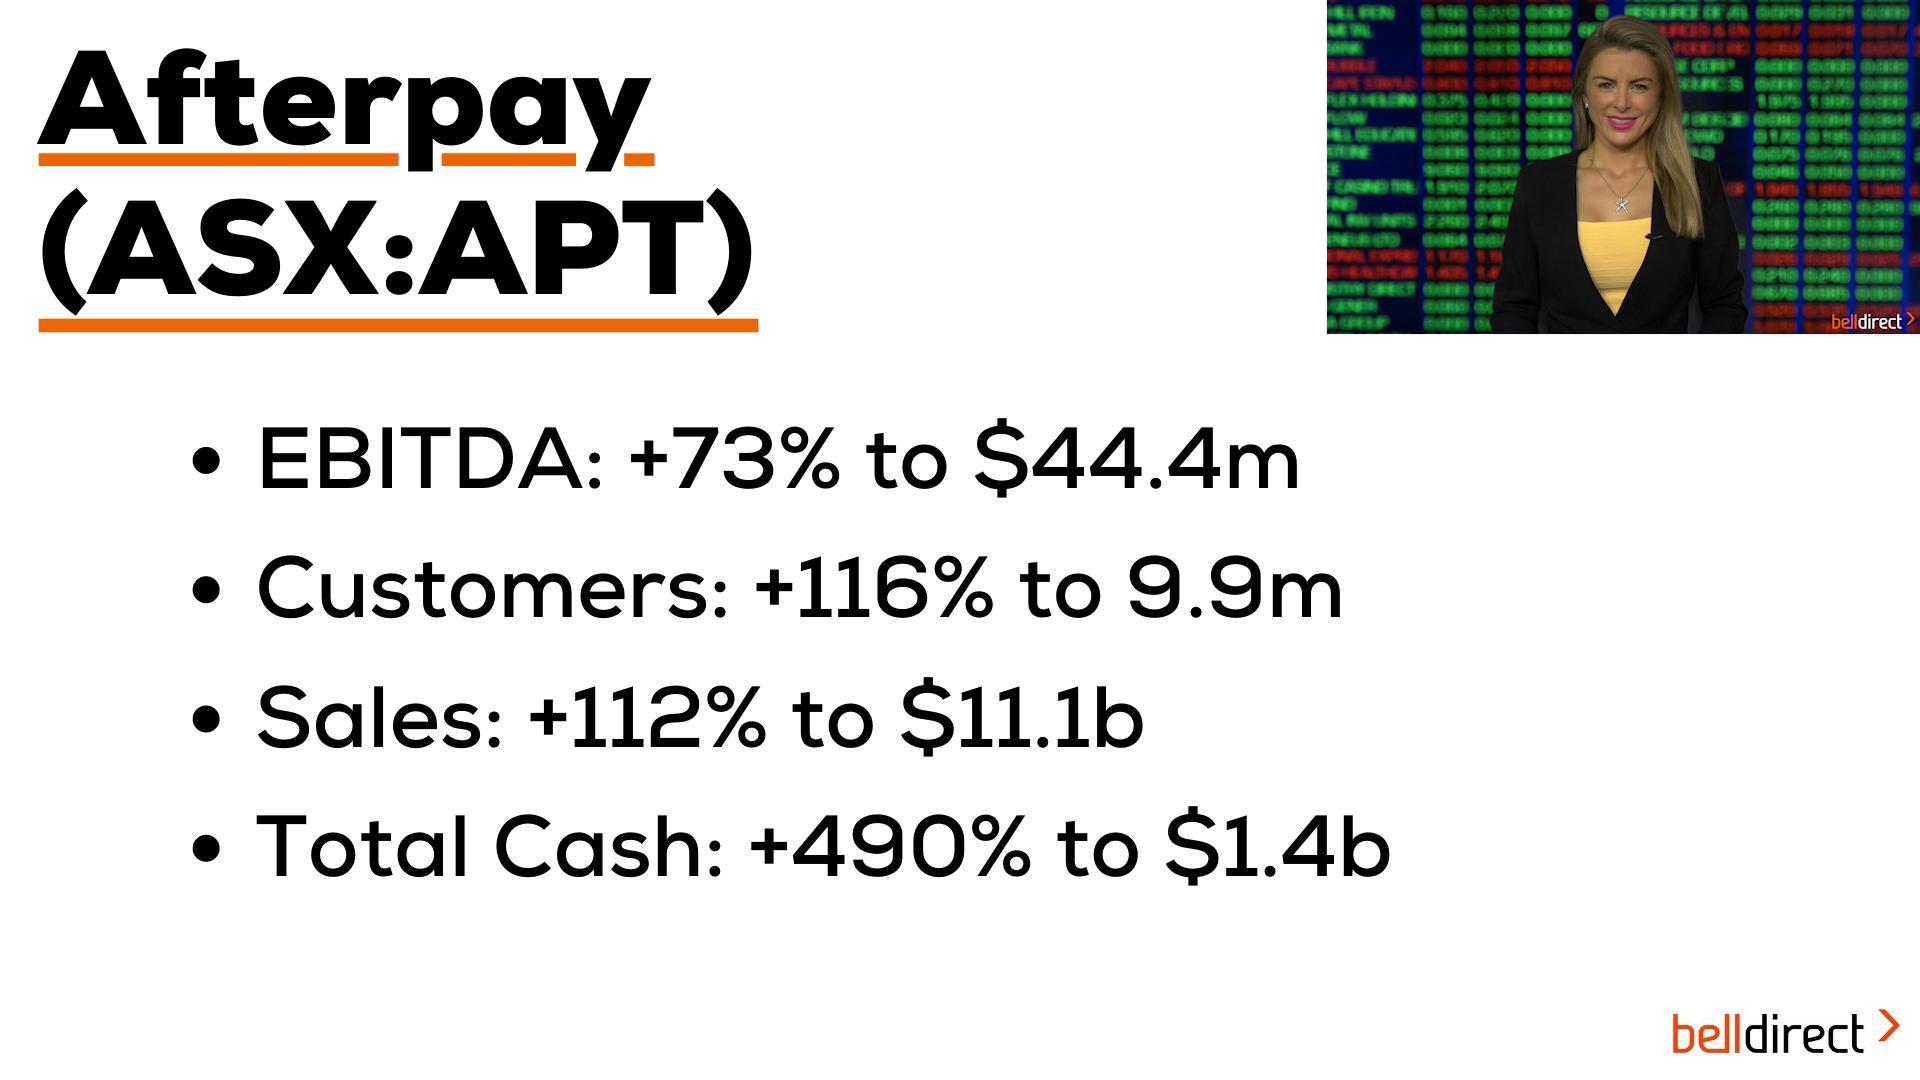 Afterpay overtakes Coles on the ASX200